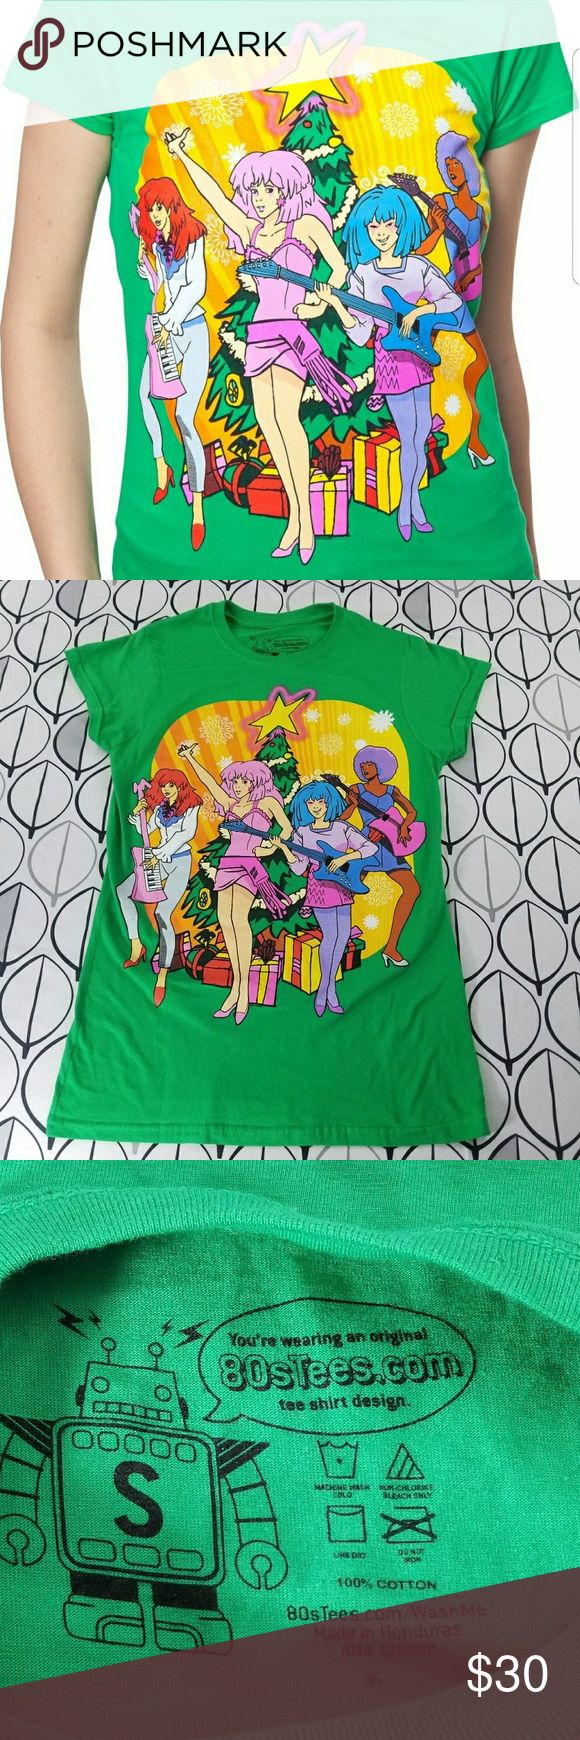 "Jem And the Holograms Christmas t shirt Retro 80s Retro looking Christmas t-shirt made by 80s tees. In perfect condition bright kelly green shlet sleeved shirt with graffic of Jem and the Holograms rocking out at a christmas party! Don't miss this chance they are sold out online and no longer availible. Vibrant colors with pink purple red blue yellow all the colors. Size small measurements laying flat are approximate bust 15""-17"" stretched length 24"" christmas epic 1980s Jem cartoons geek…"